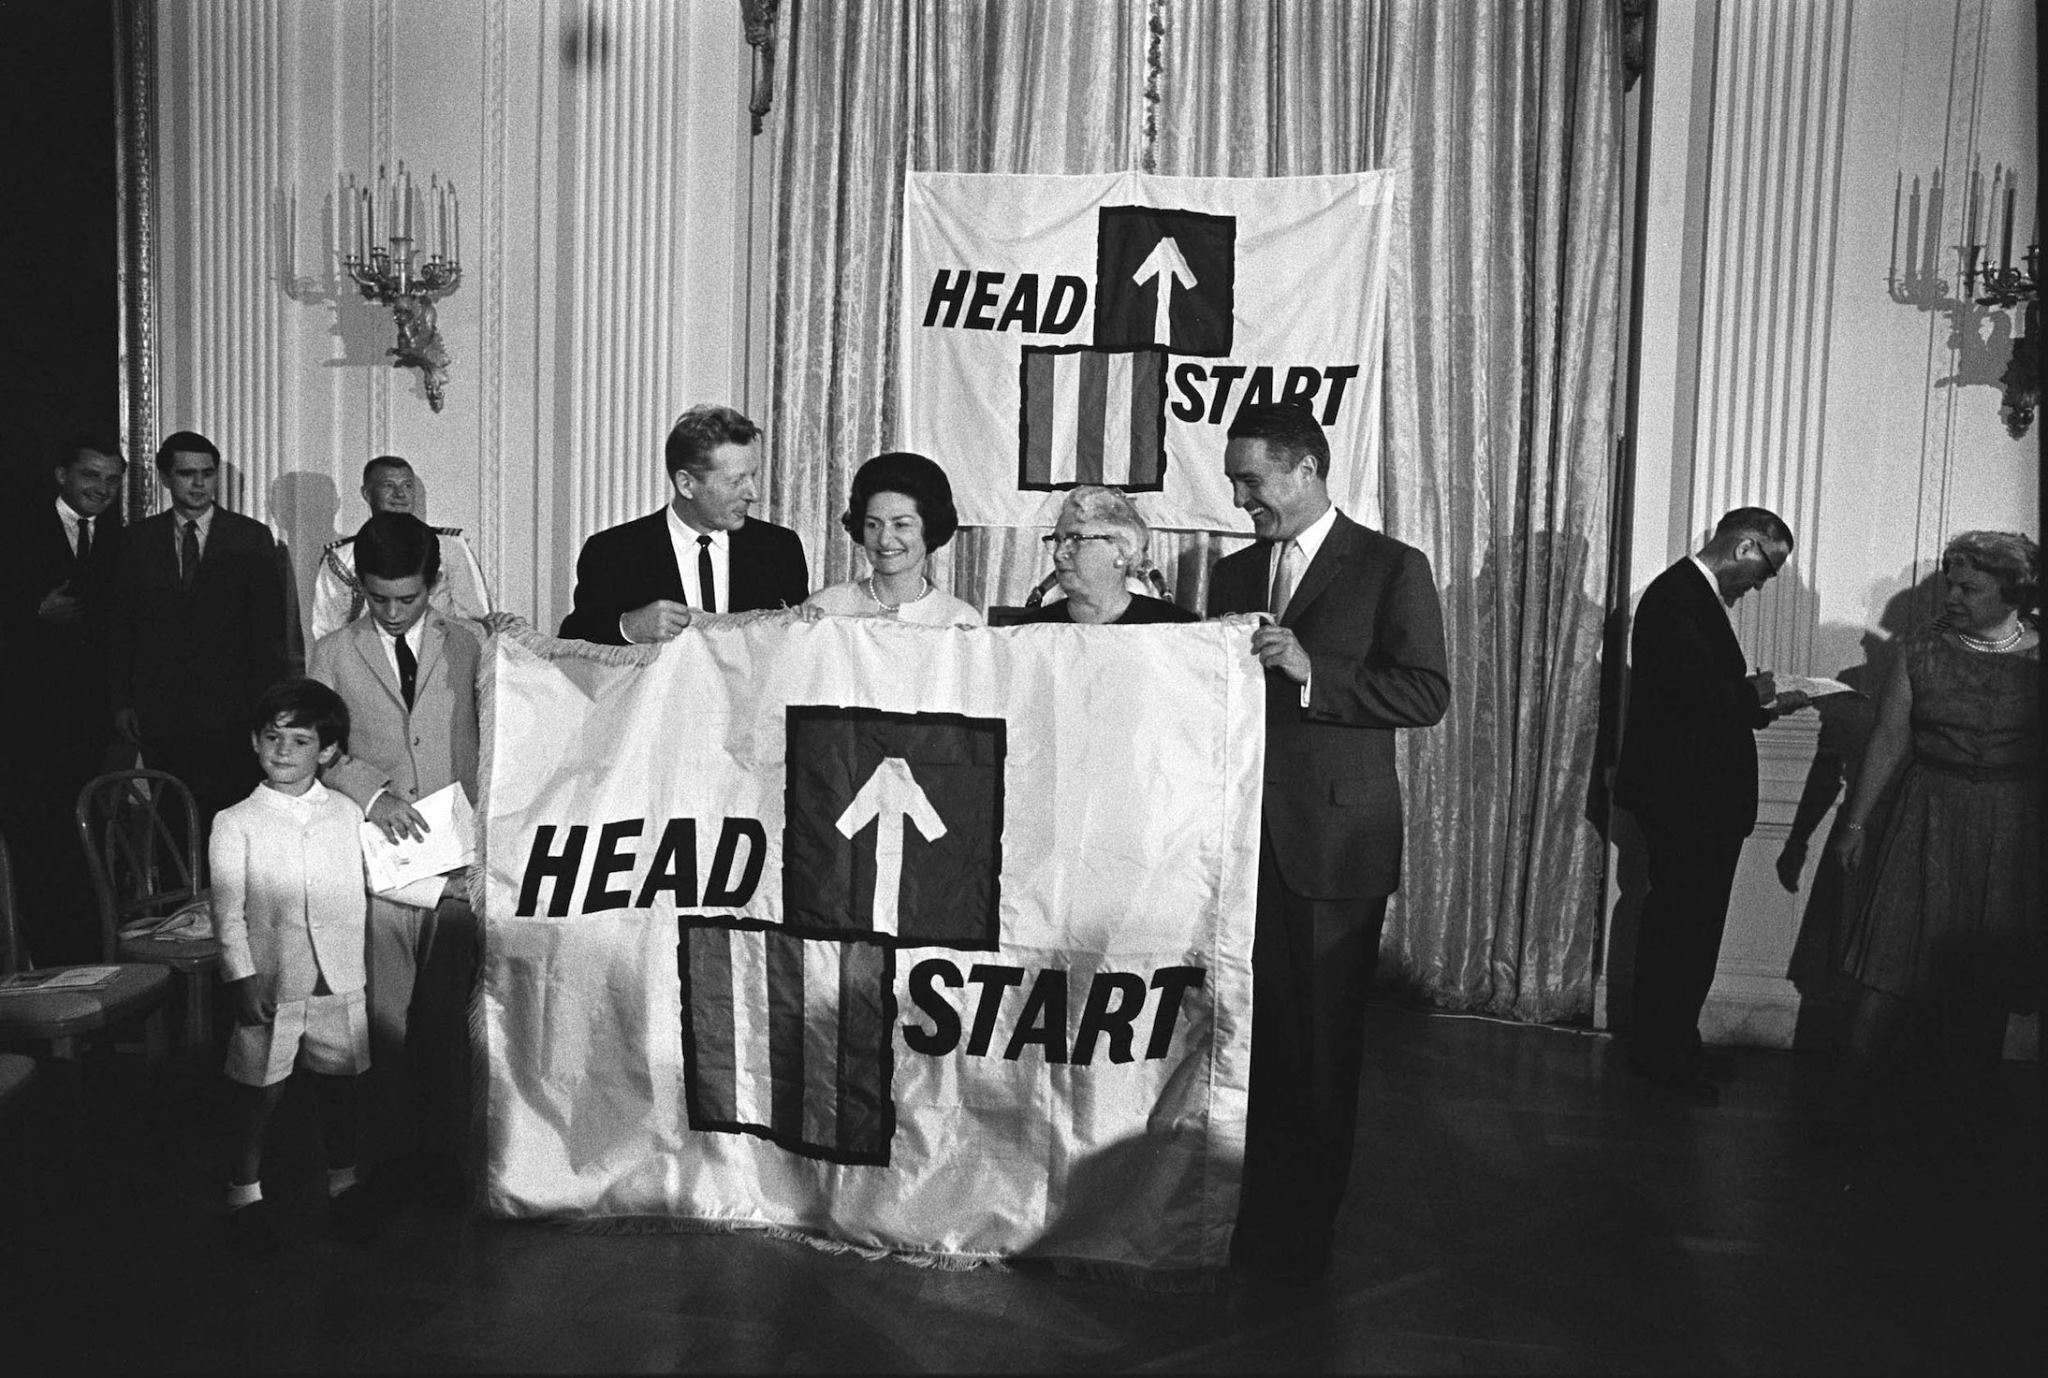 LBJ Library photo, 233-15A-WH65. L-R Timothy Shriver, Robert Shriver, Danny Kaye, Lady Bird Johnson, Mrs. Lou Maginn (Director of a Head Start project in East Fairfield, Vermont), Sargen.